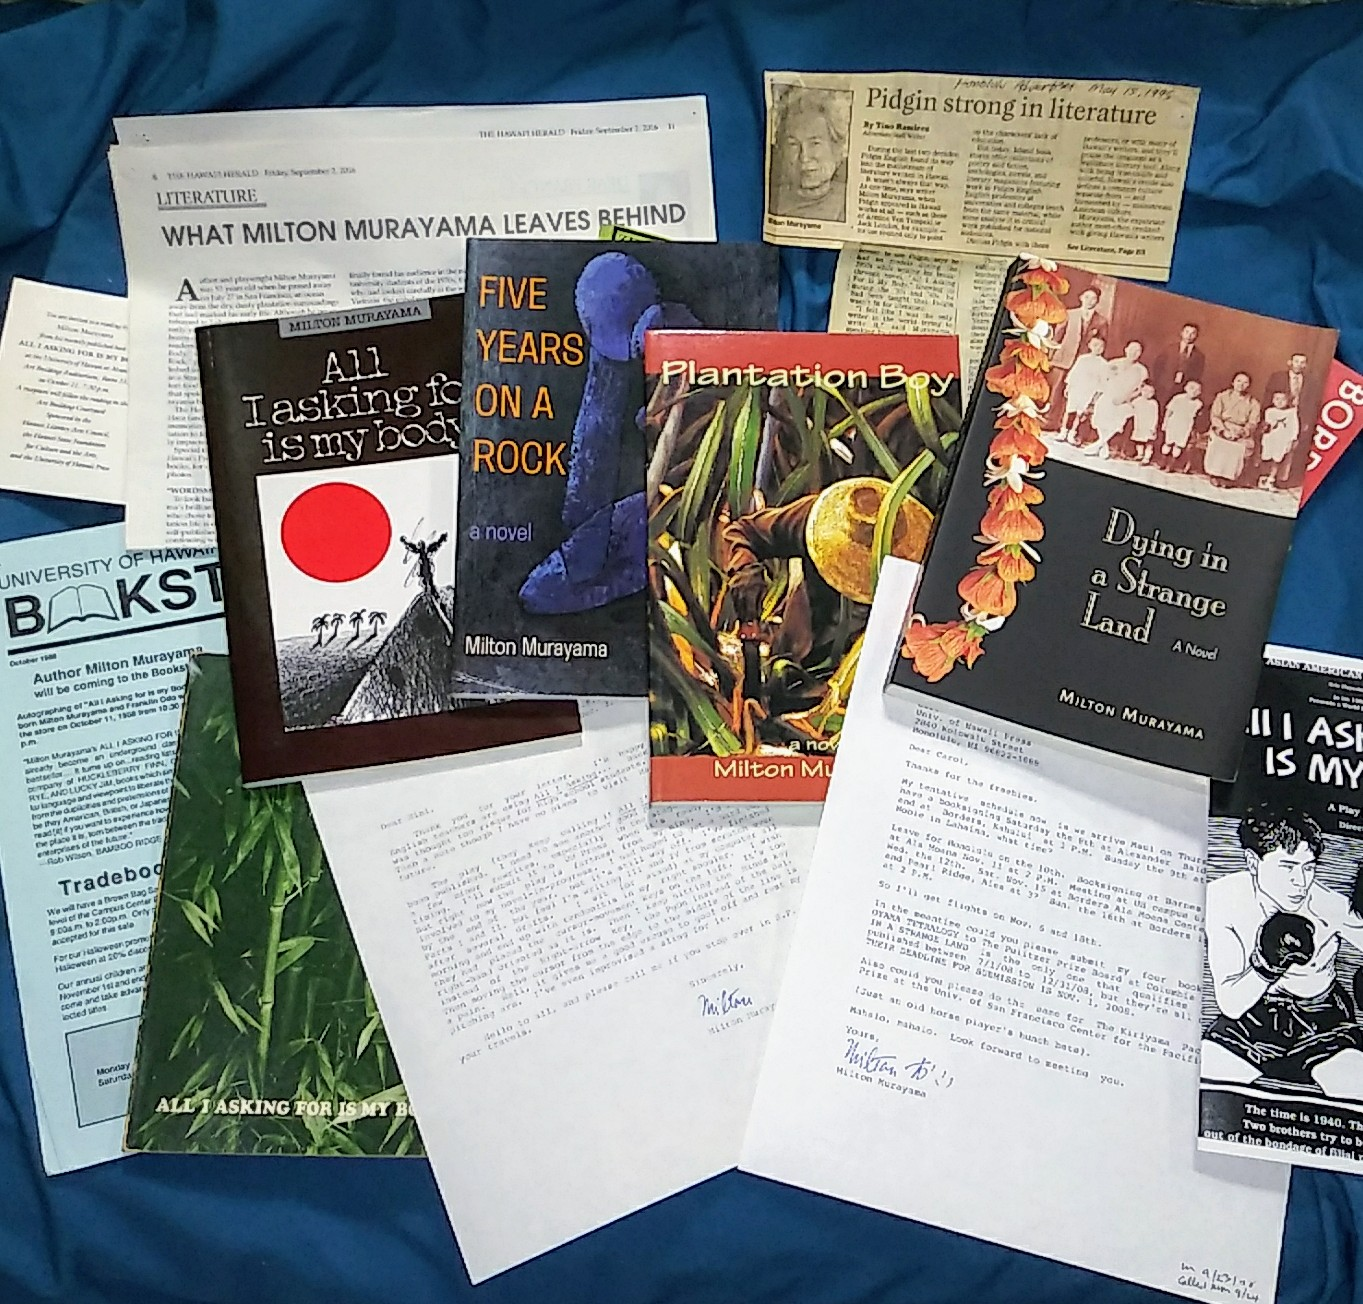 News from University of Hawai'i Press | Books, reviews, and events